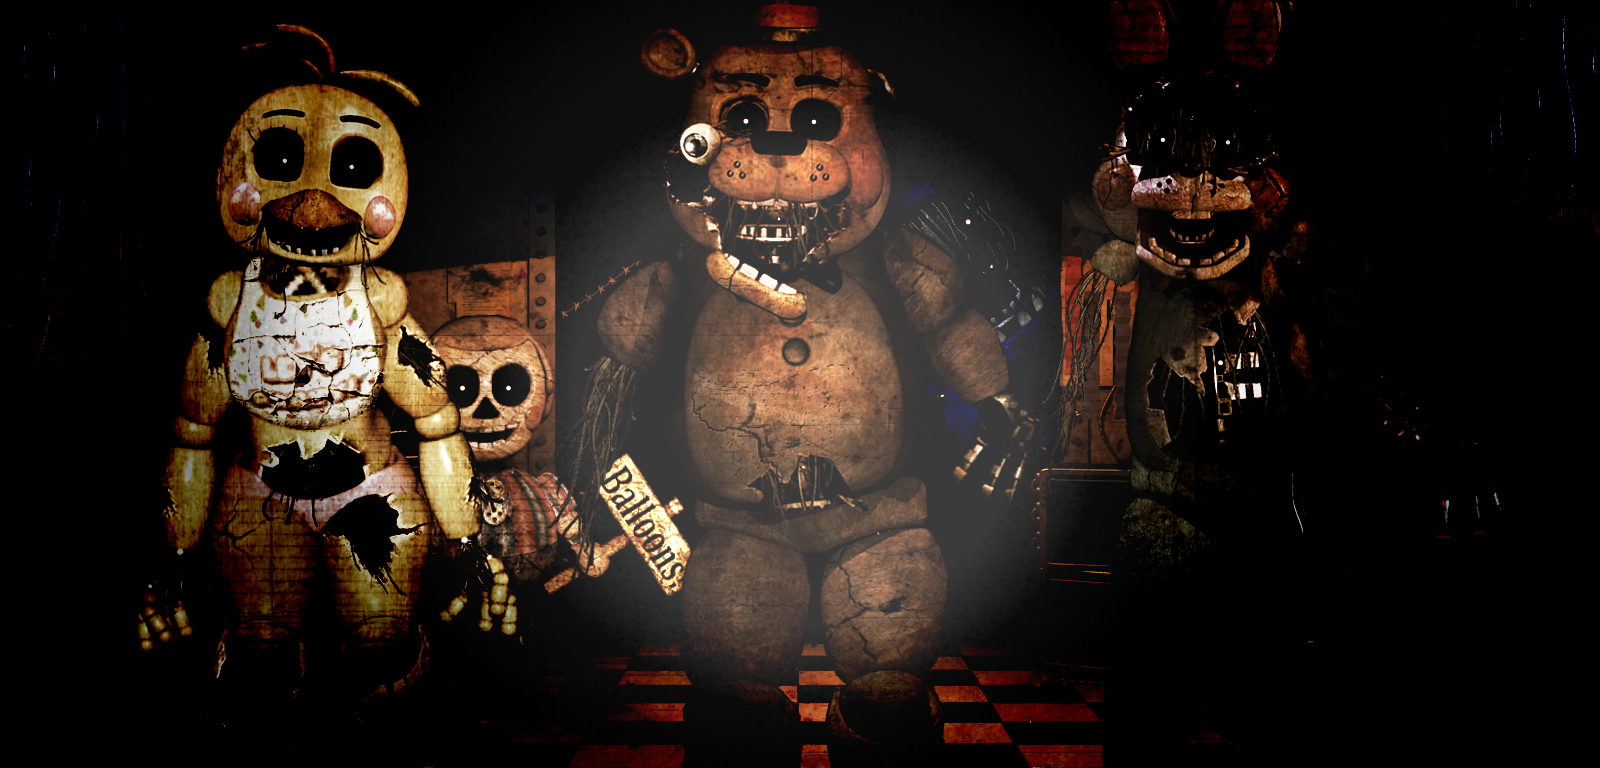 Steam Workshop :: Five nights at freddy's: The whole package